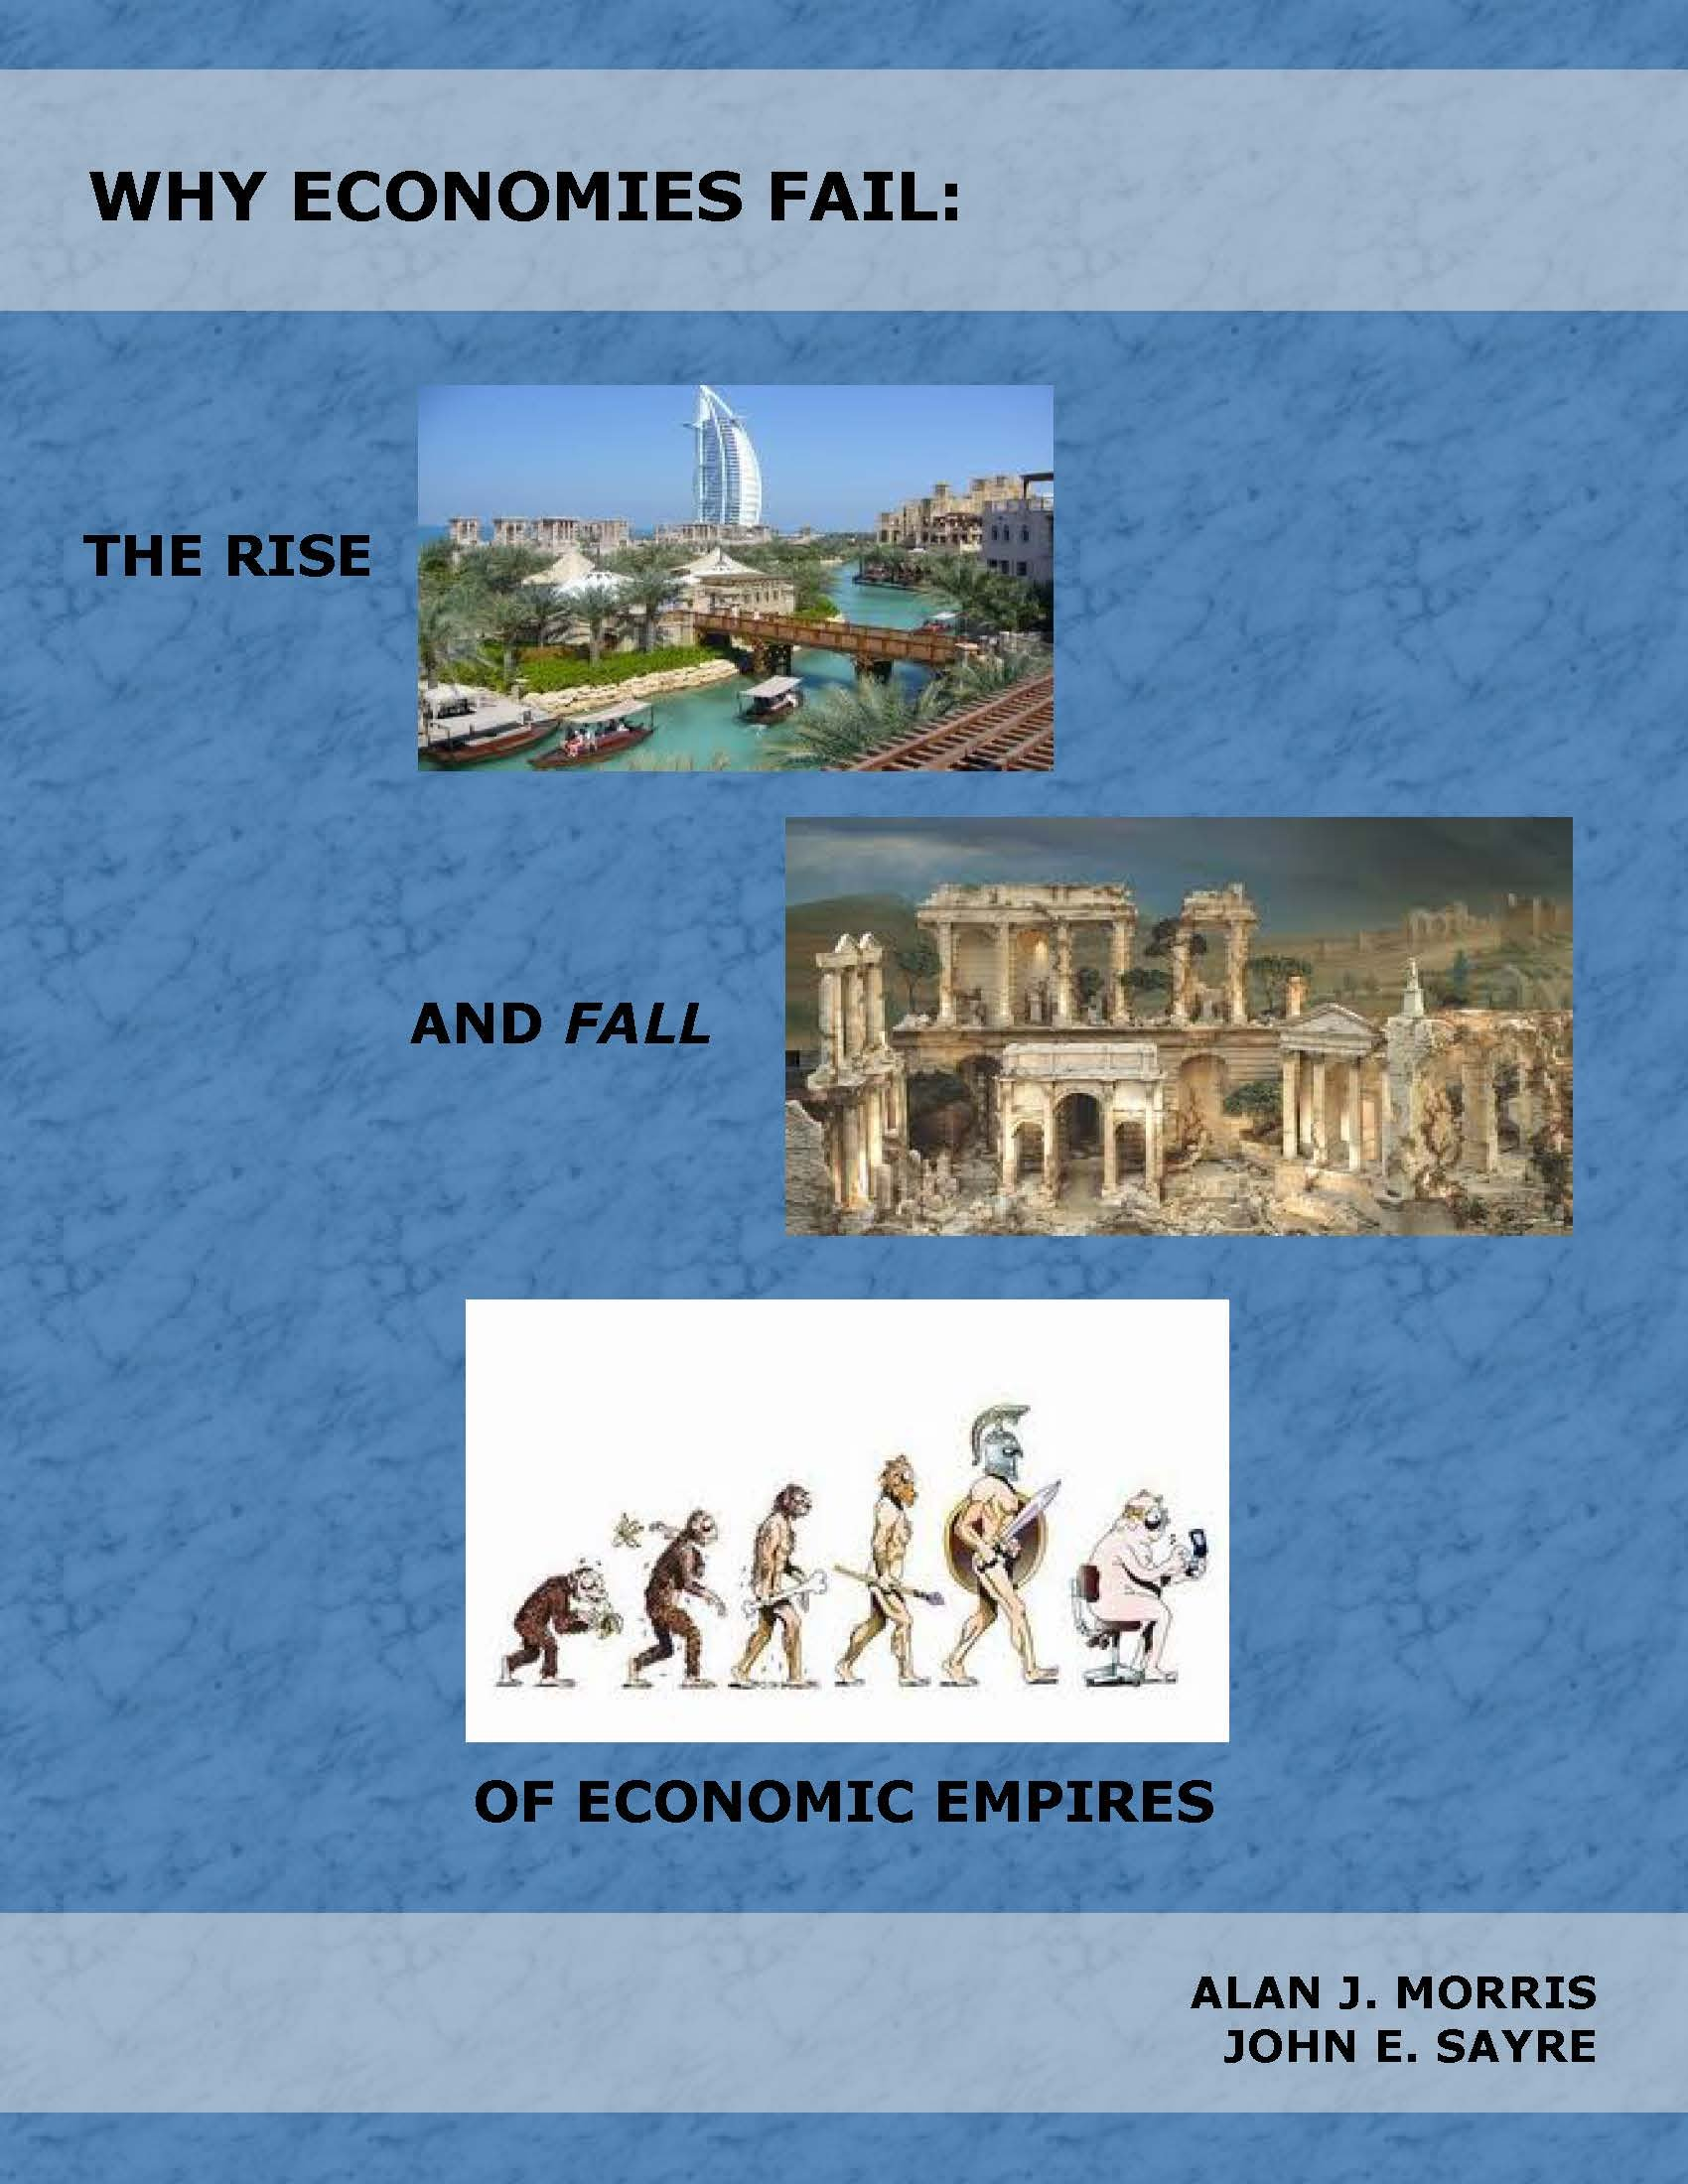 Why Economies Fail: The Rise and Fall of Economic Empires